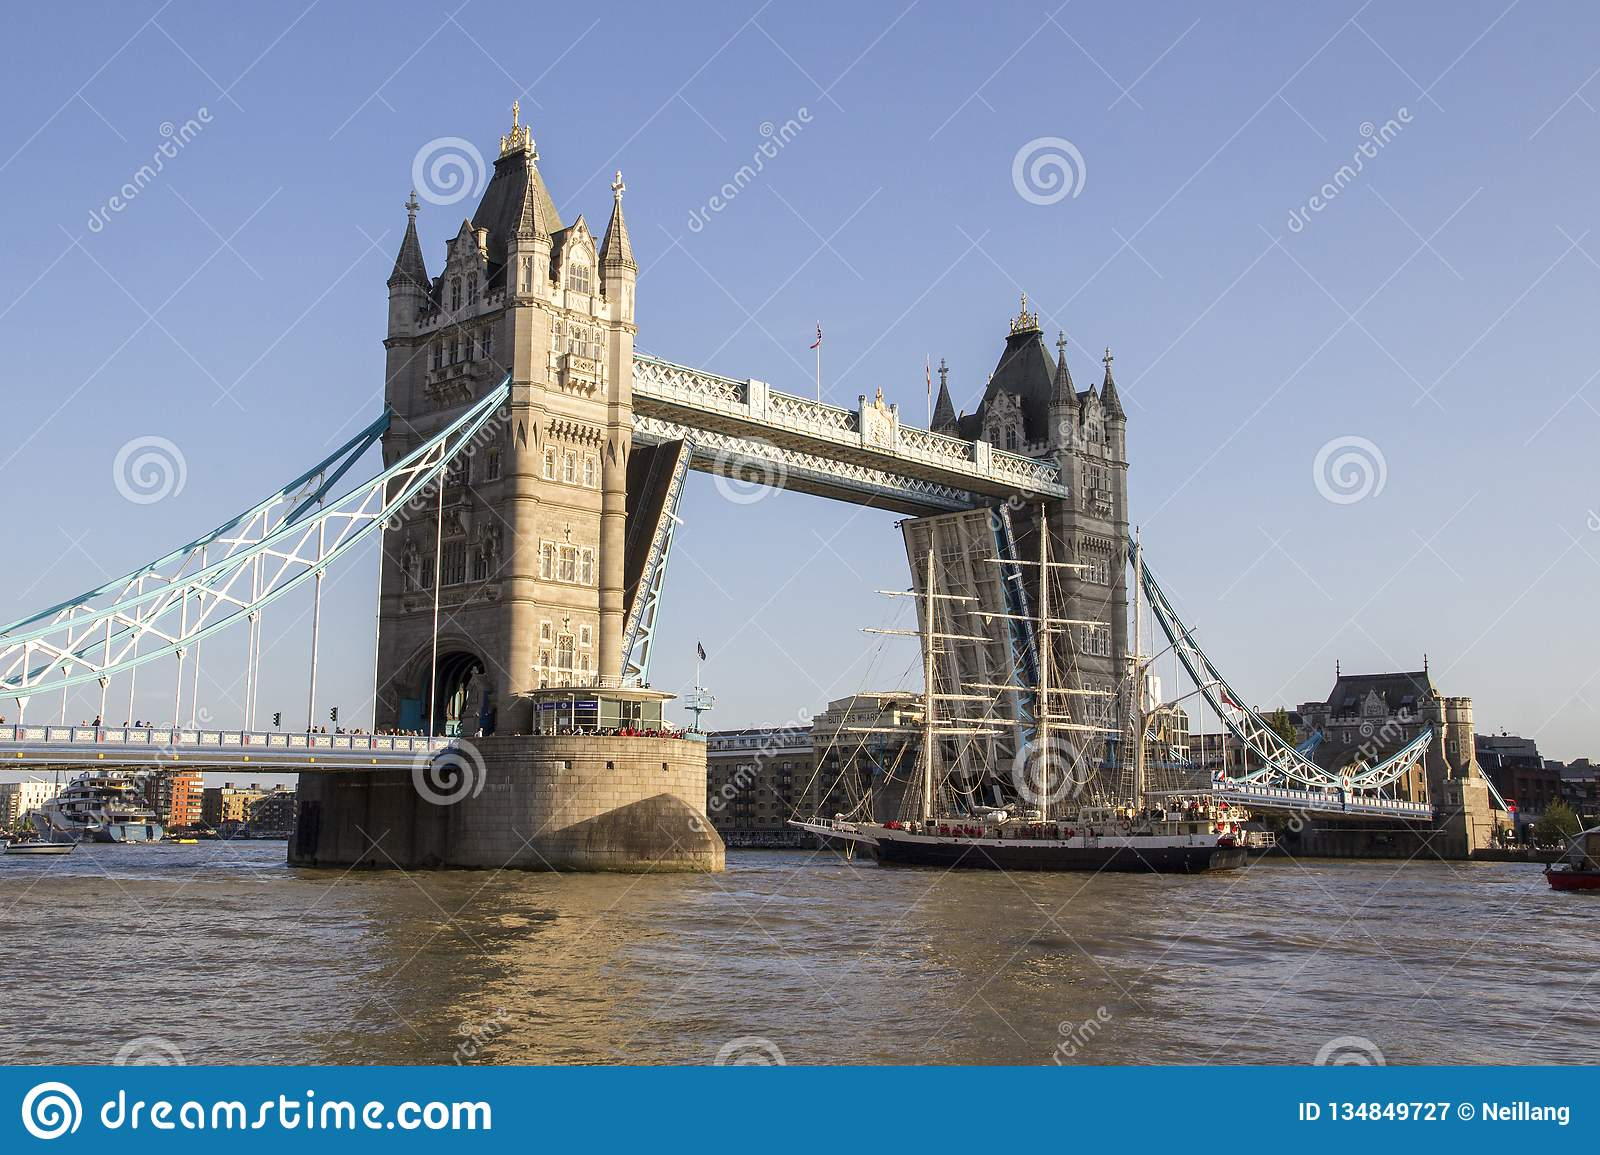 View of Tower Bridge on the River Thames opening for the Lord Nelson tall ship. London, England,